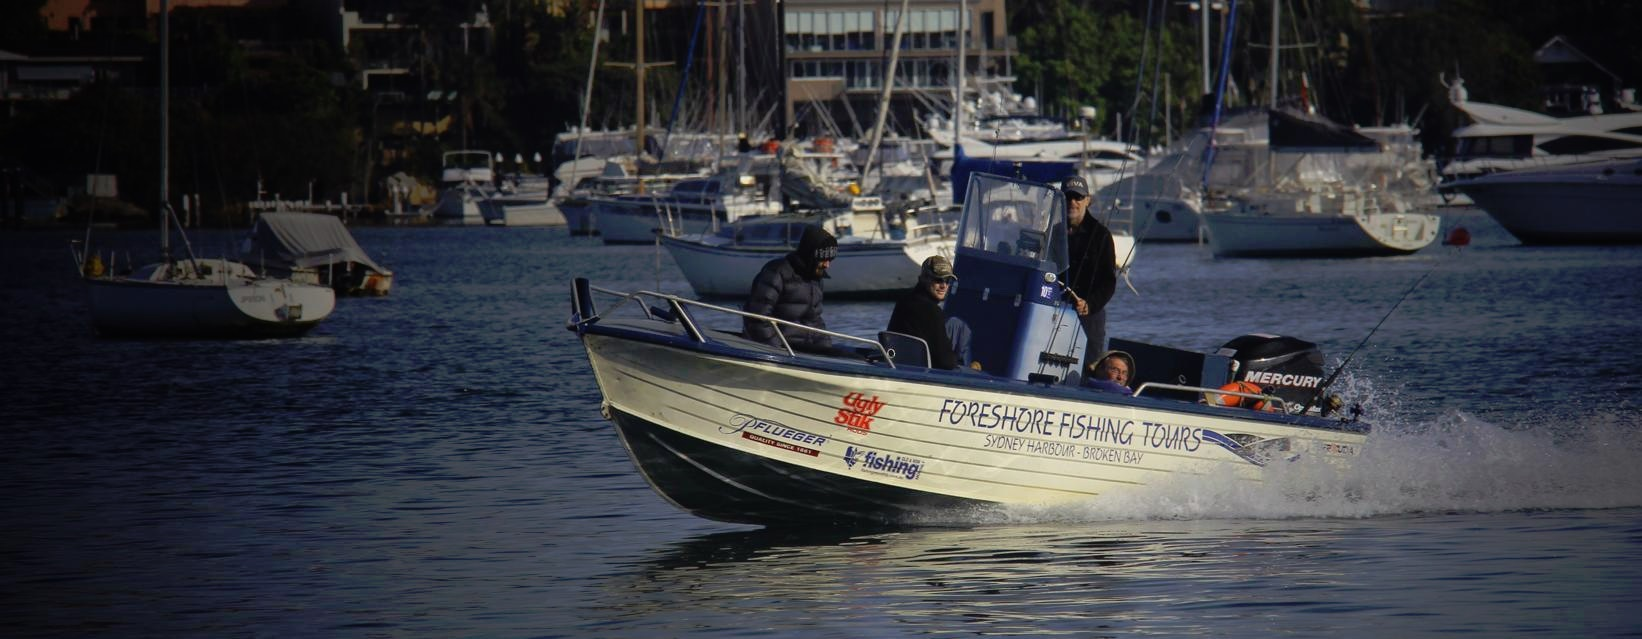 Foreshore fishing charters boat crusing Sydney Harbour